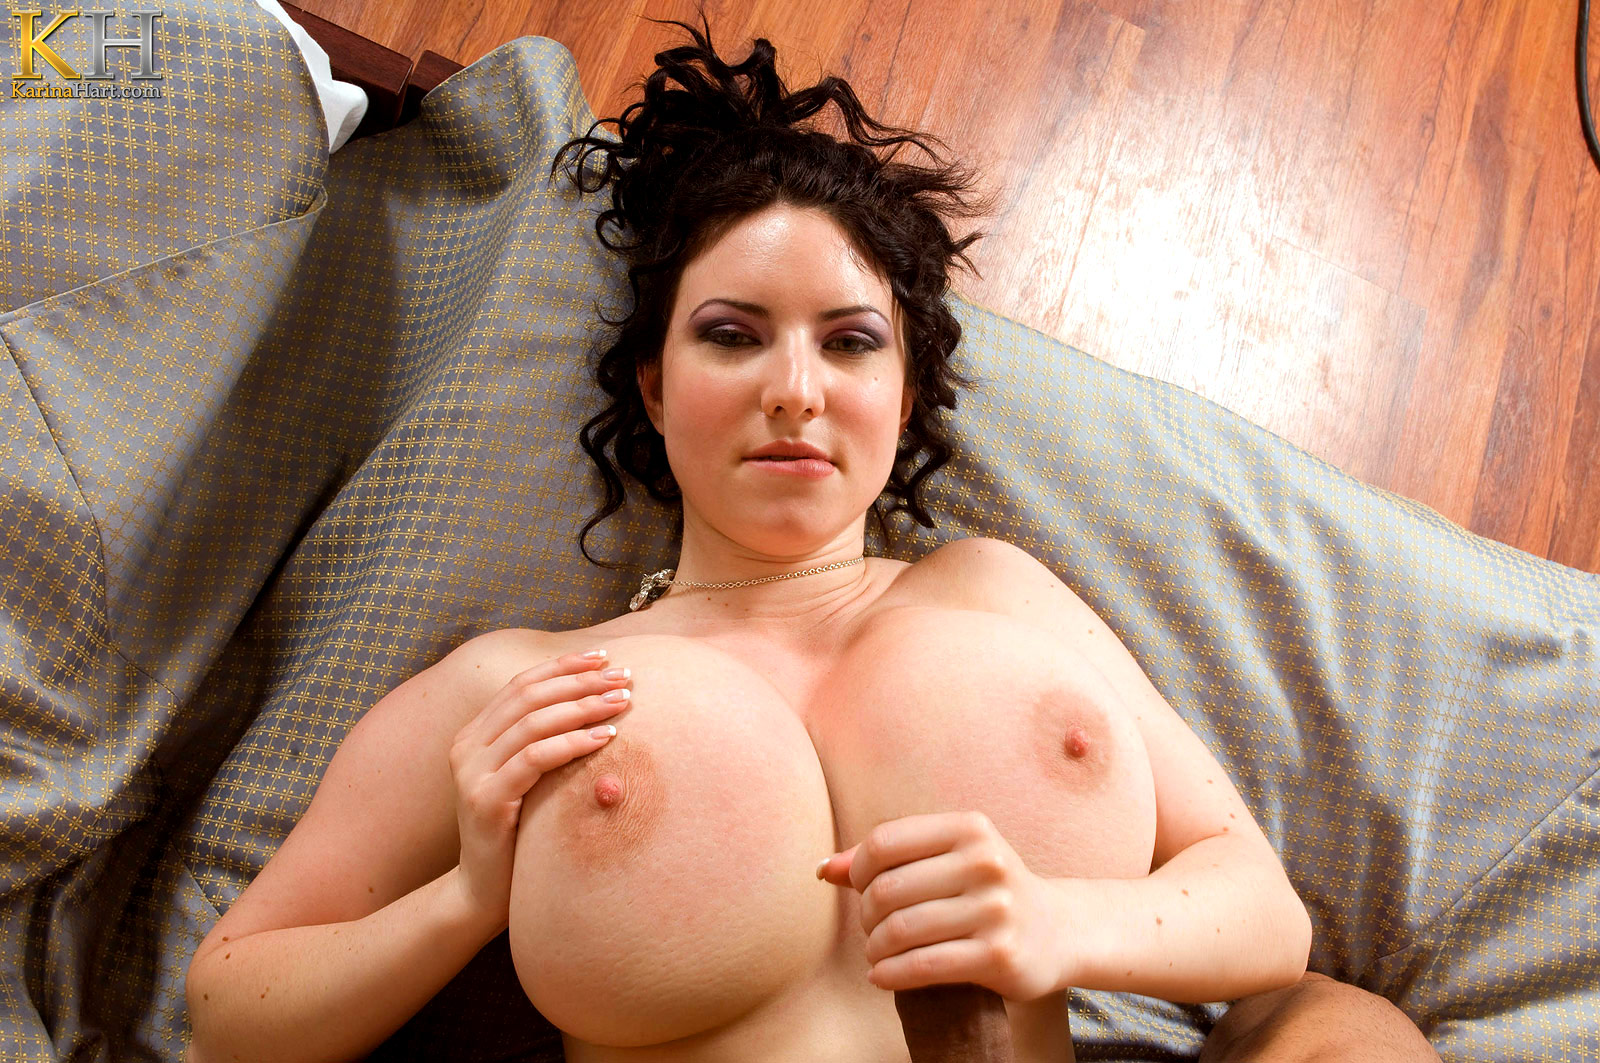 Crystsl aussie married milf